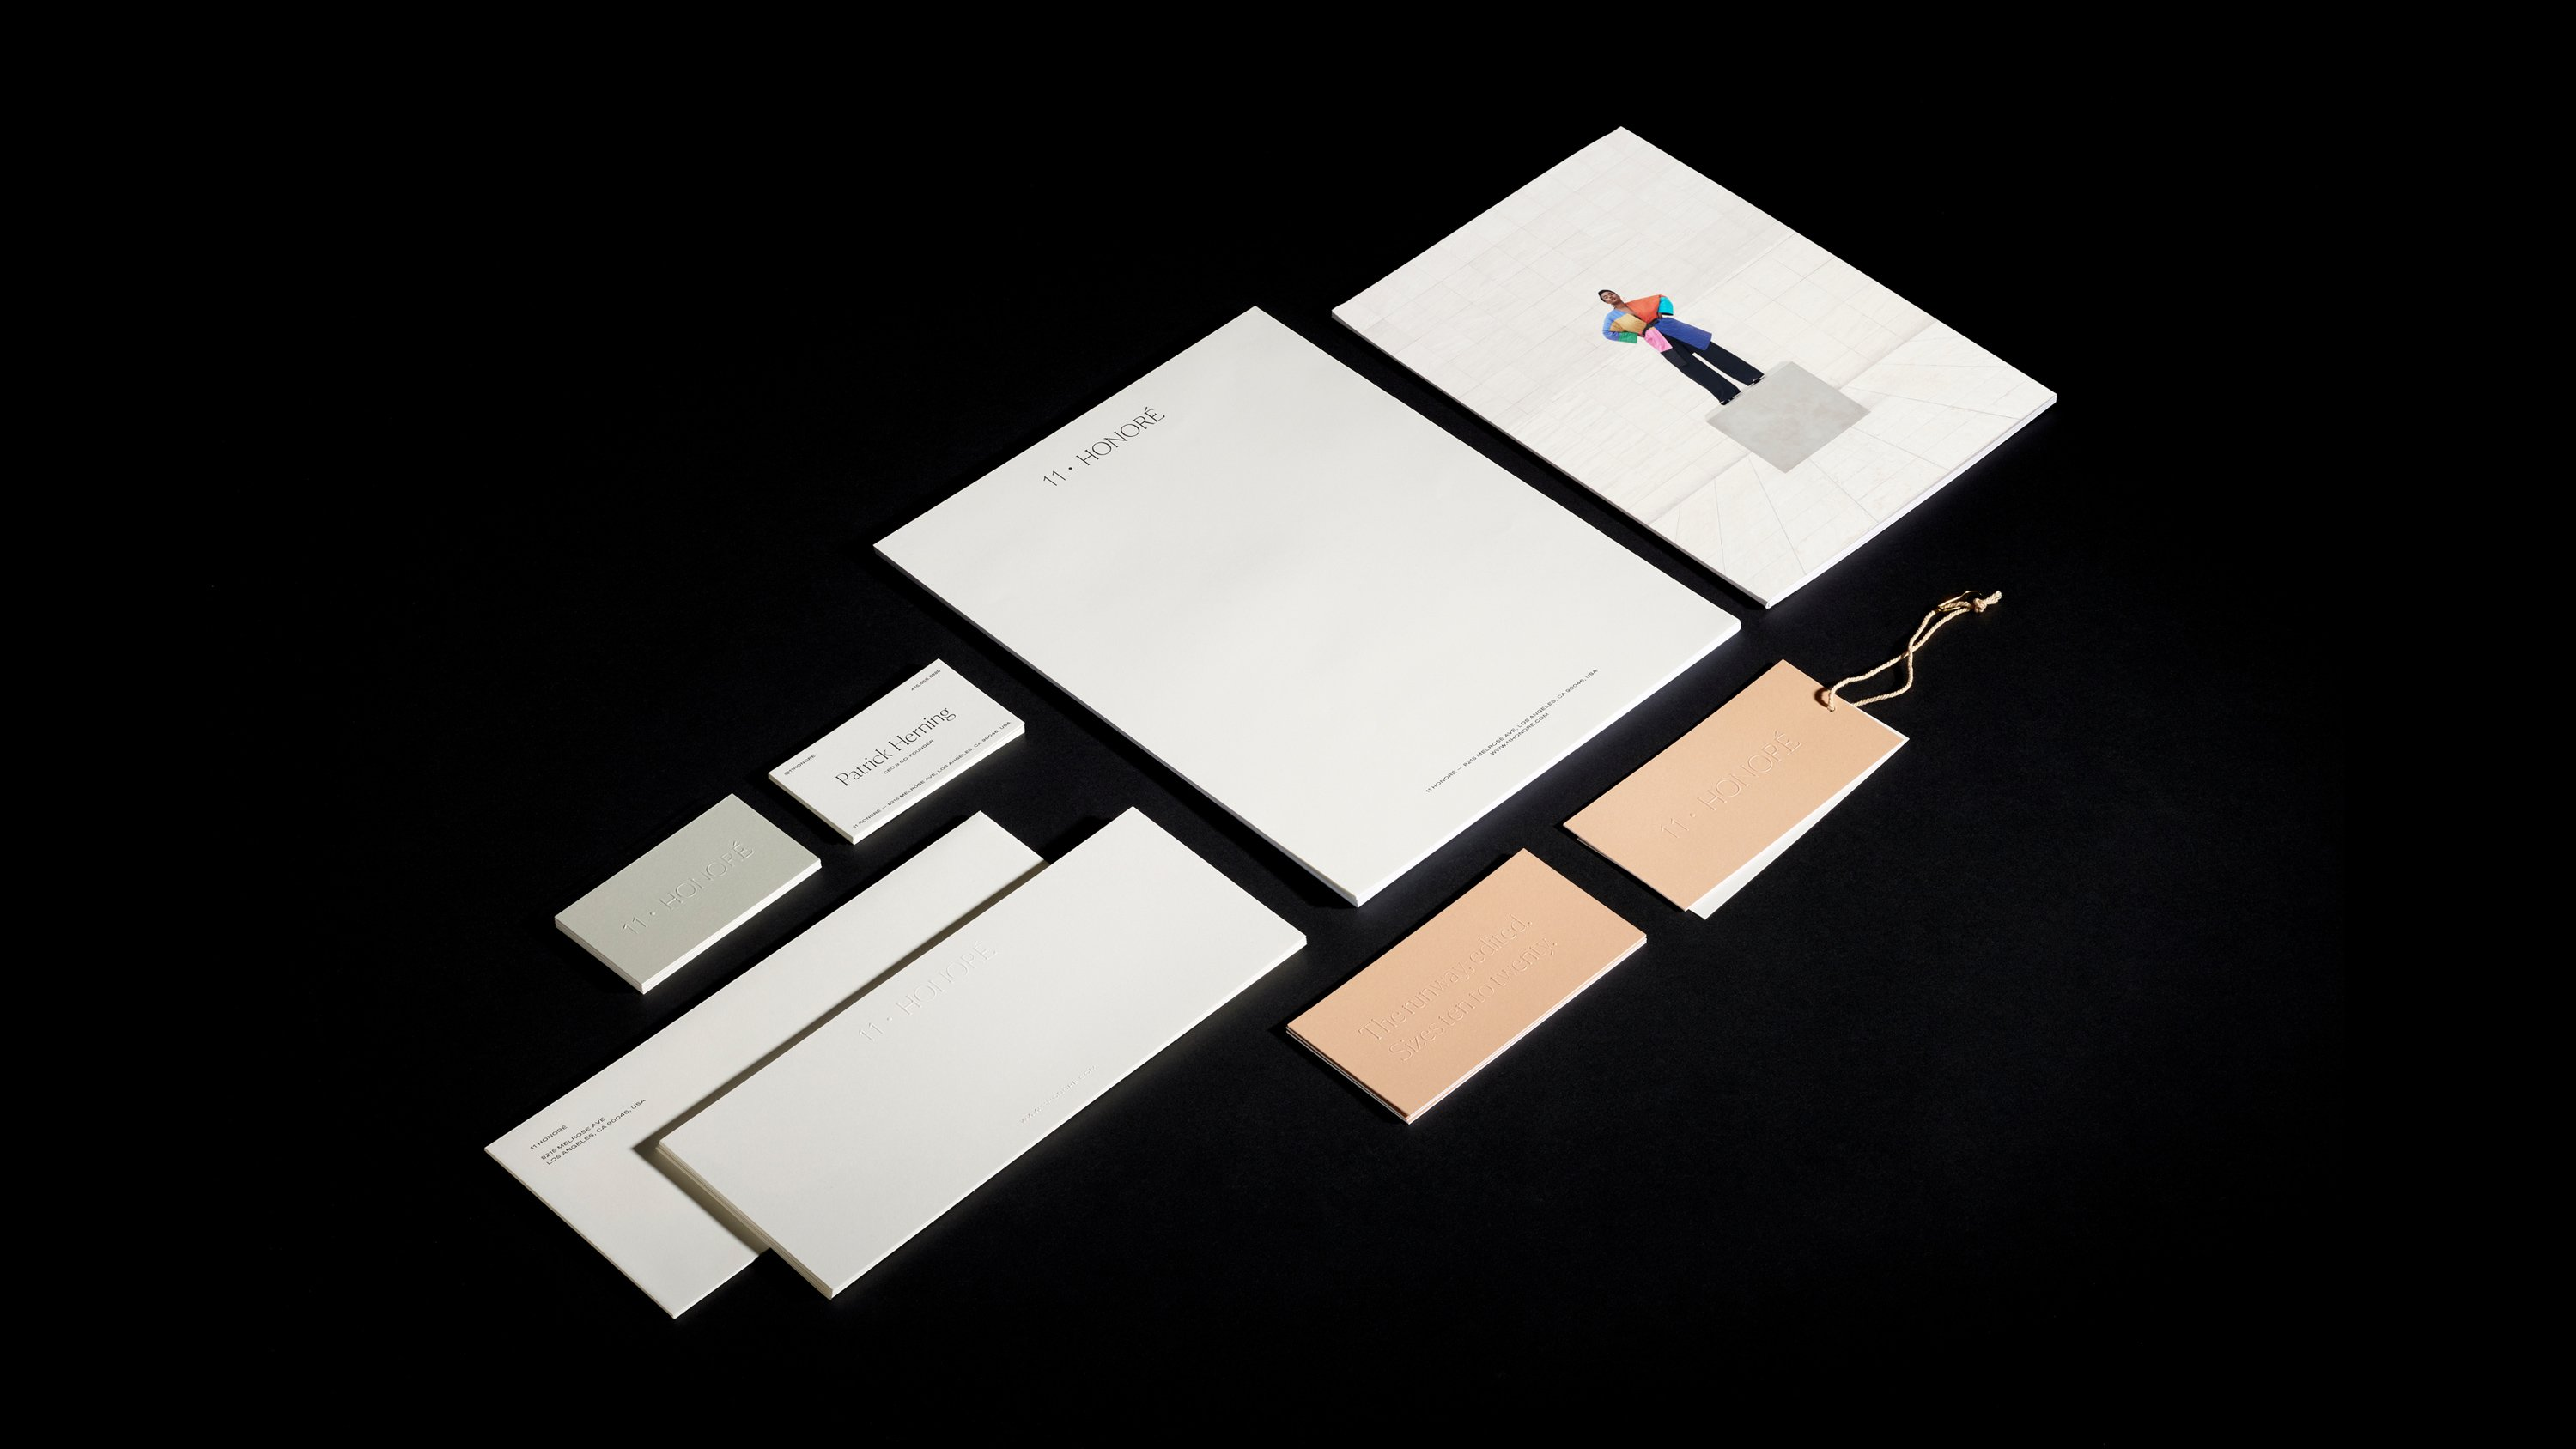 11 Honoré custom letterhead, hang tags, business cards and envelopes, print design and branding c